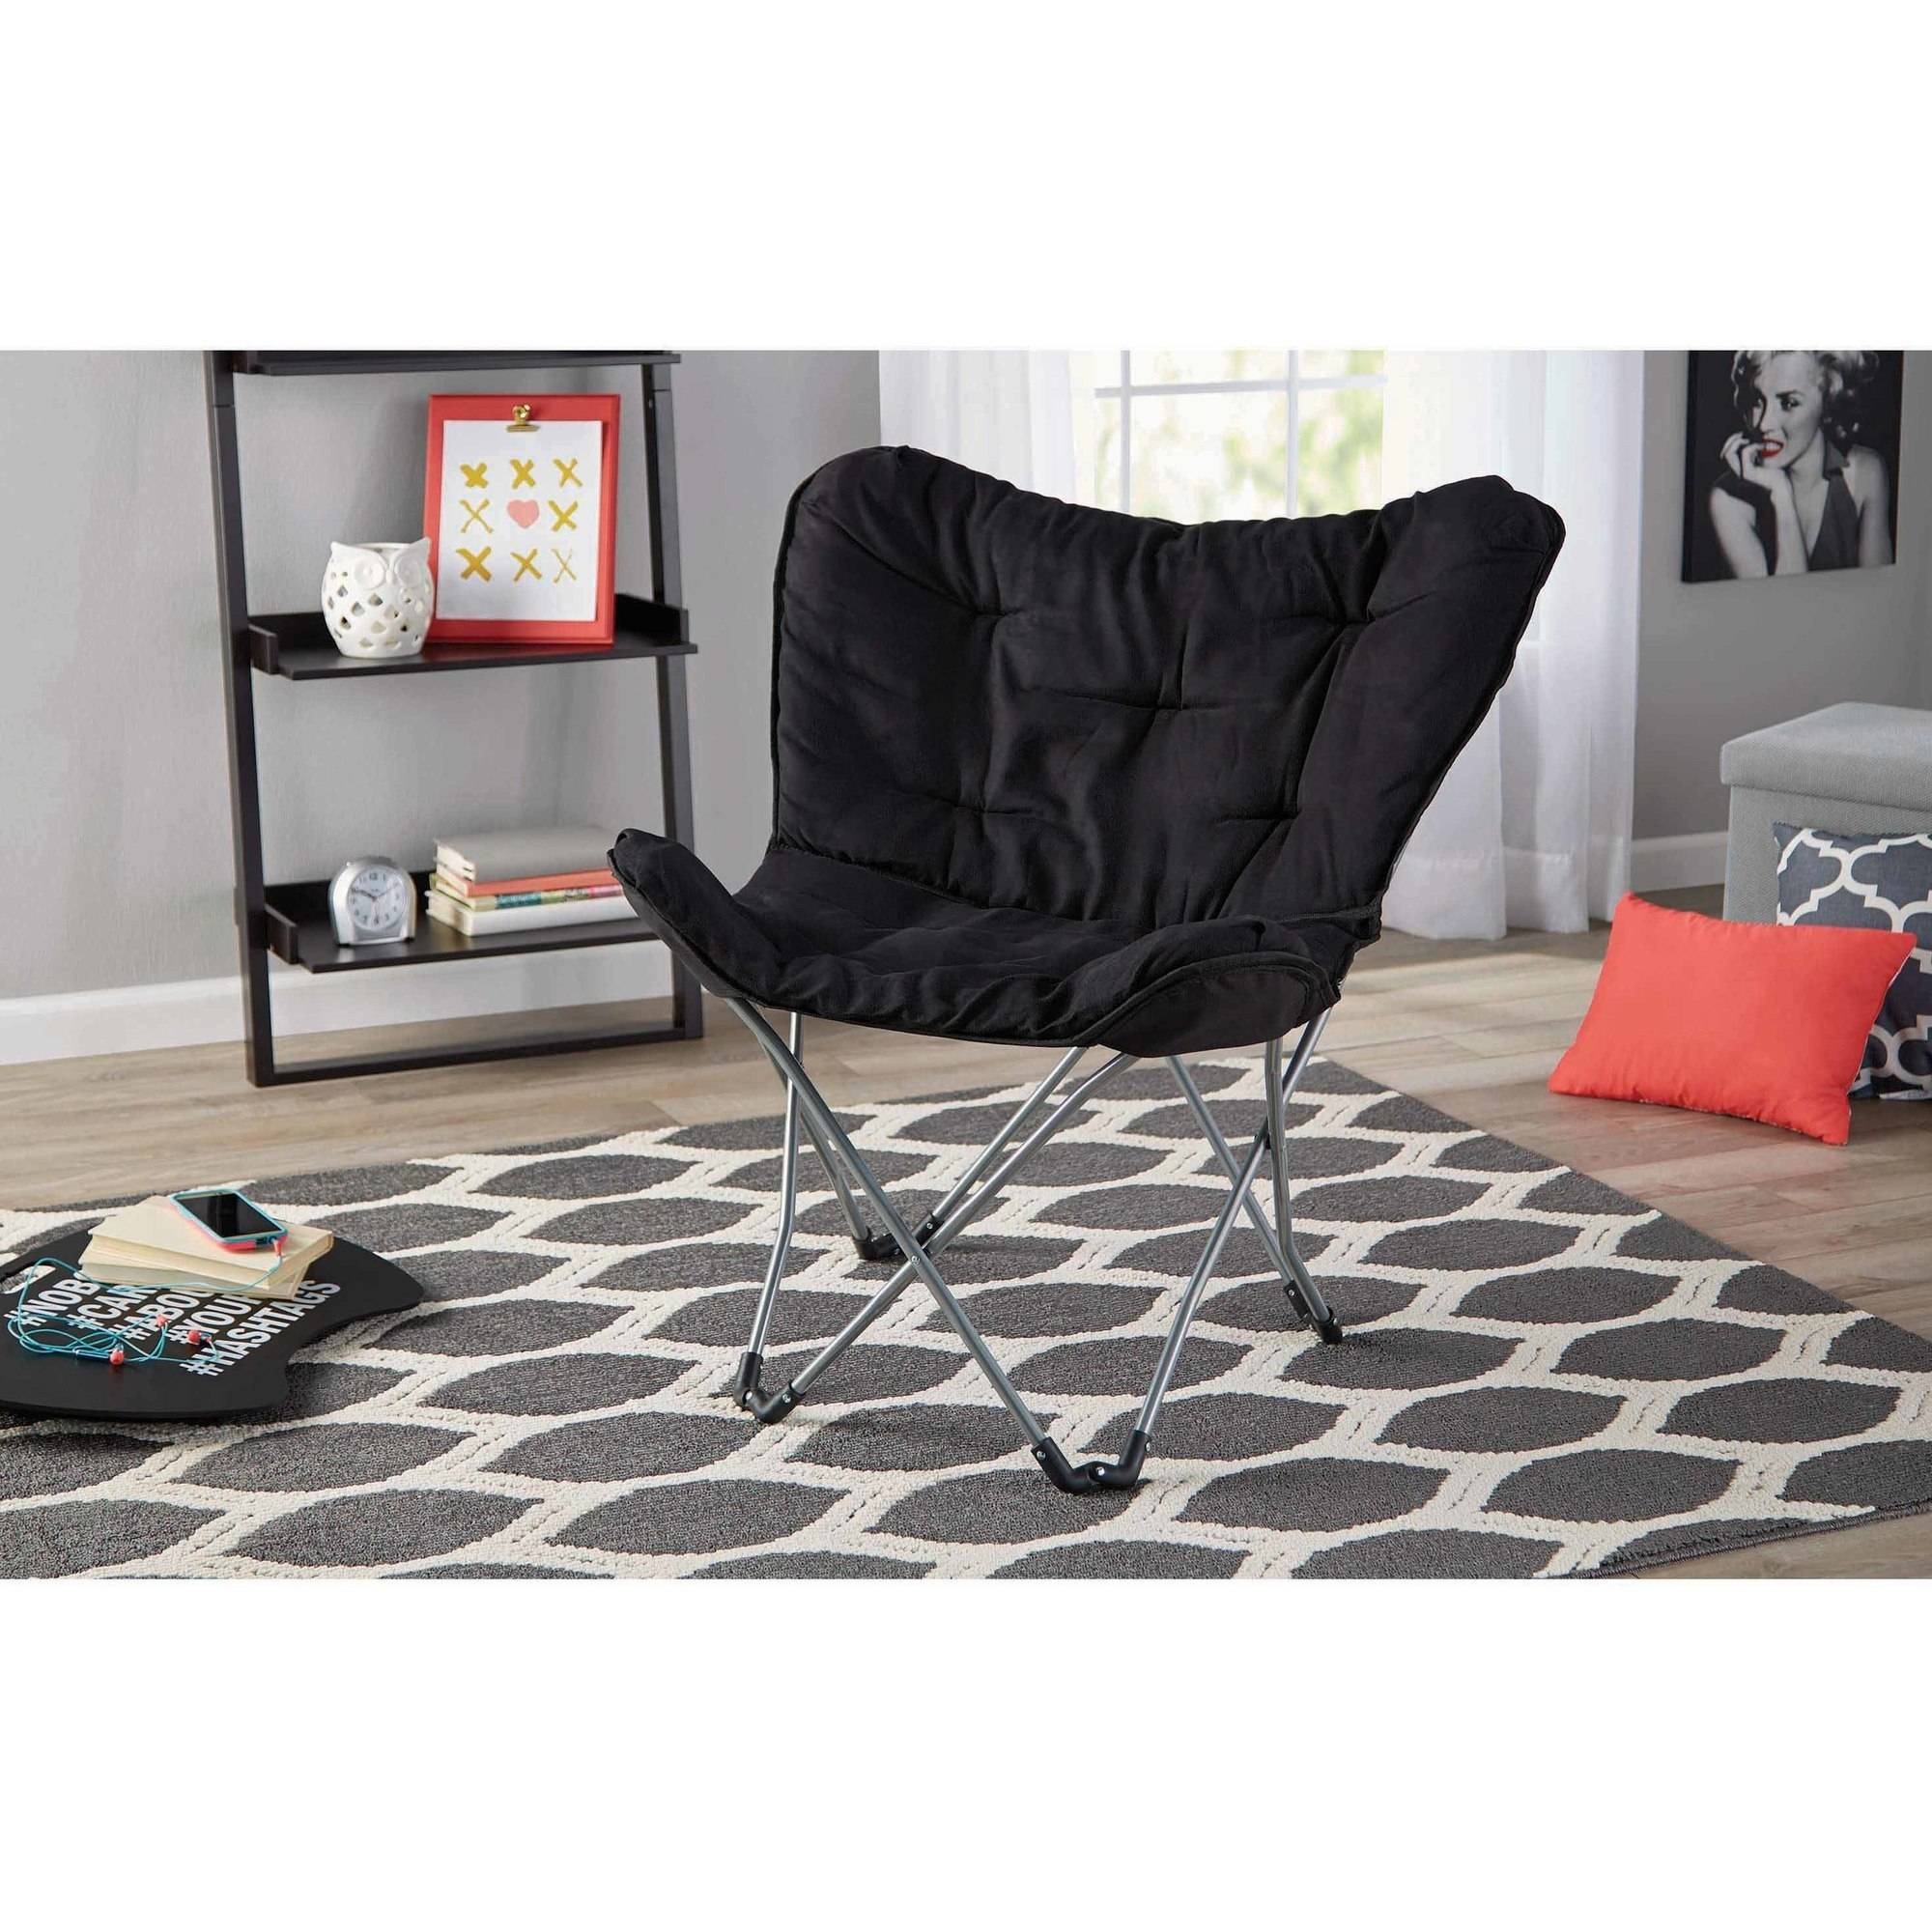 Mainstays Butterfly Chair Walmartcom